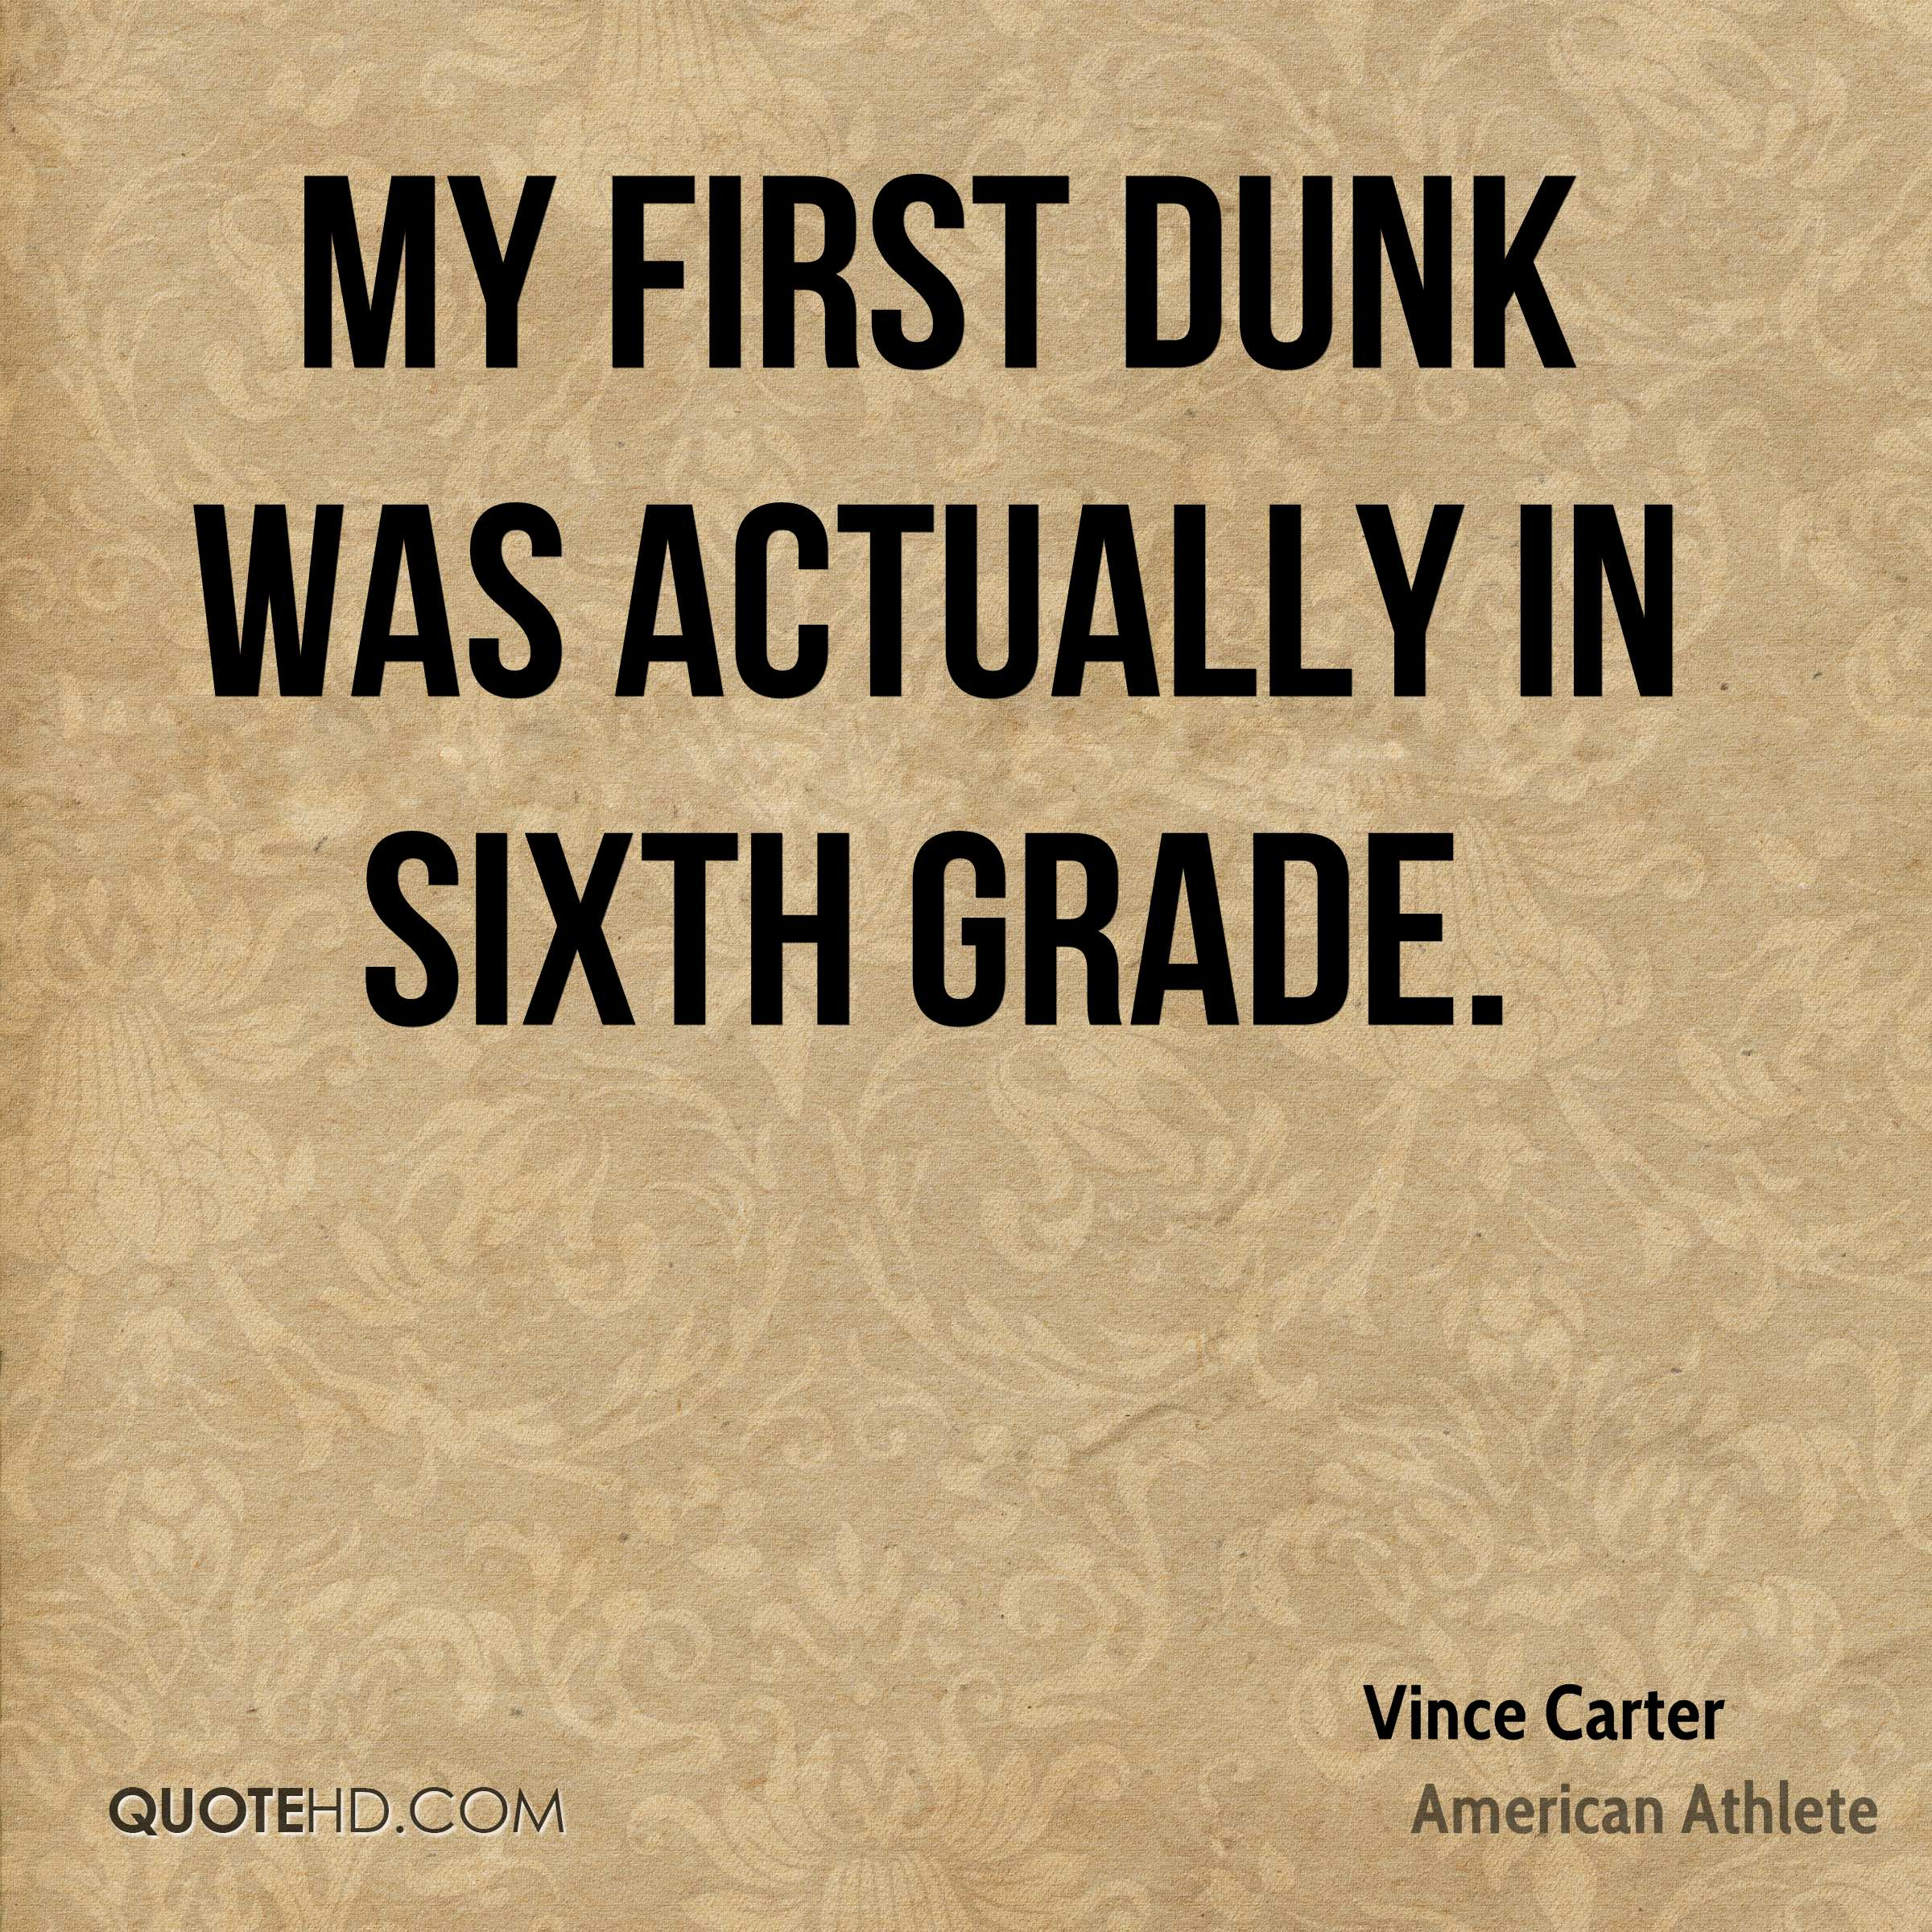 Vince Carter Quotes   QuoteHD